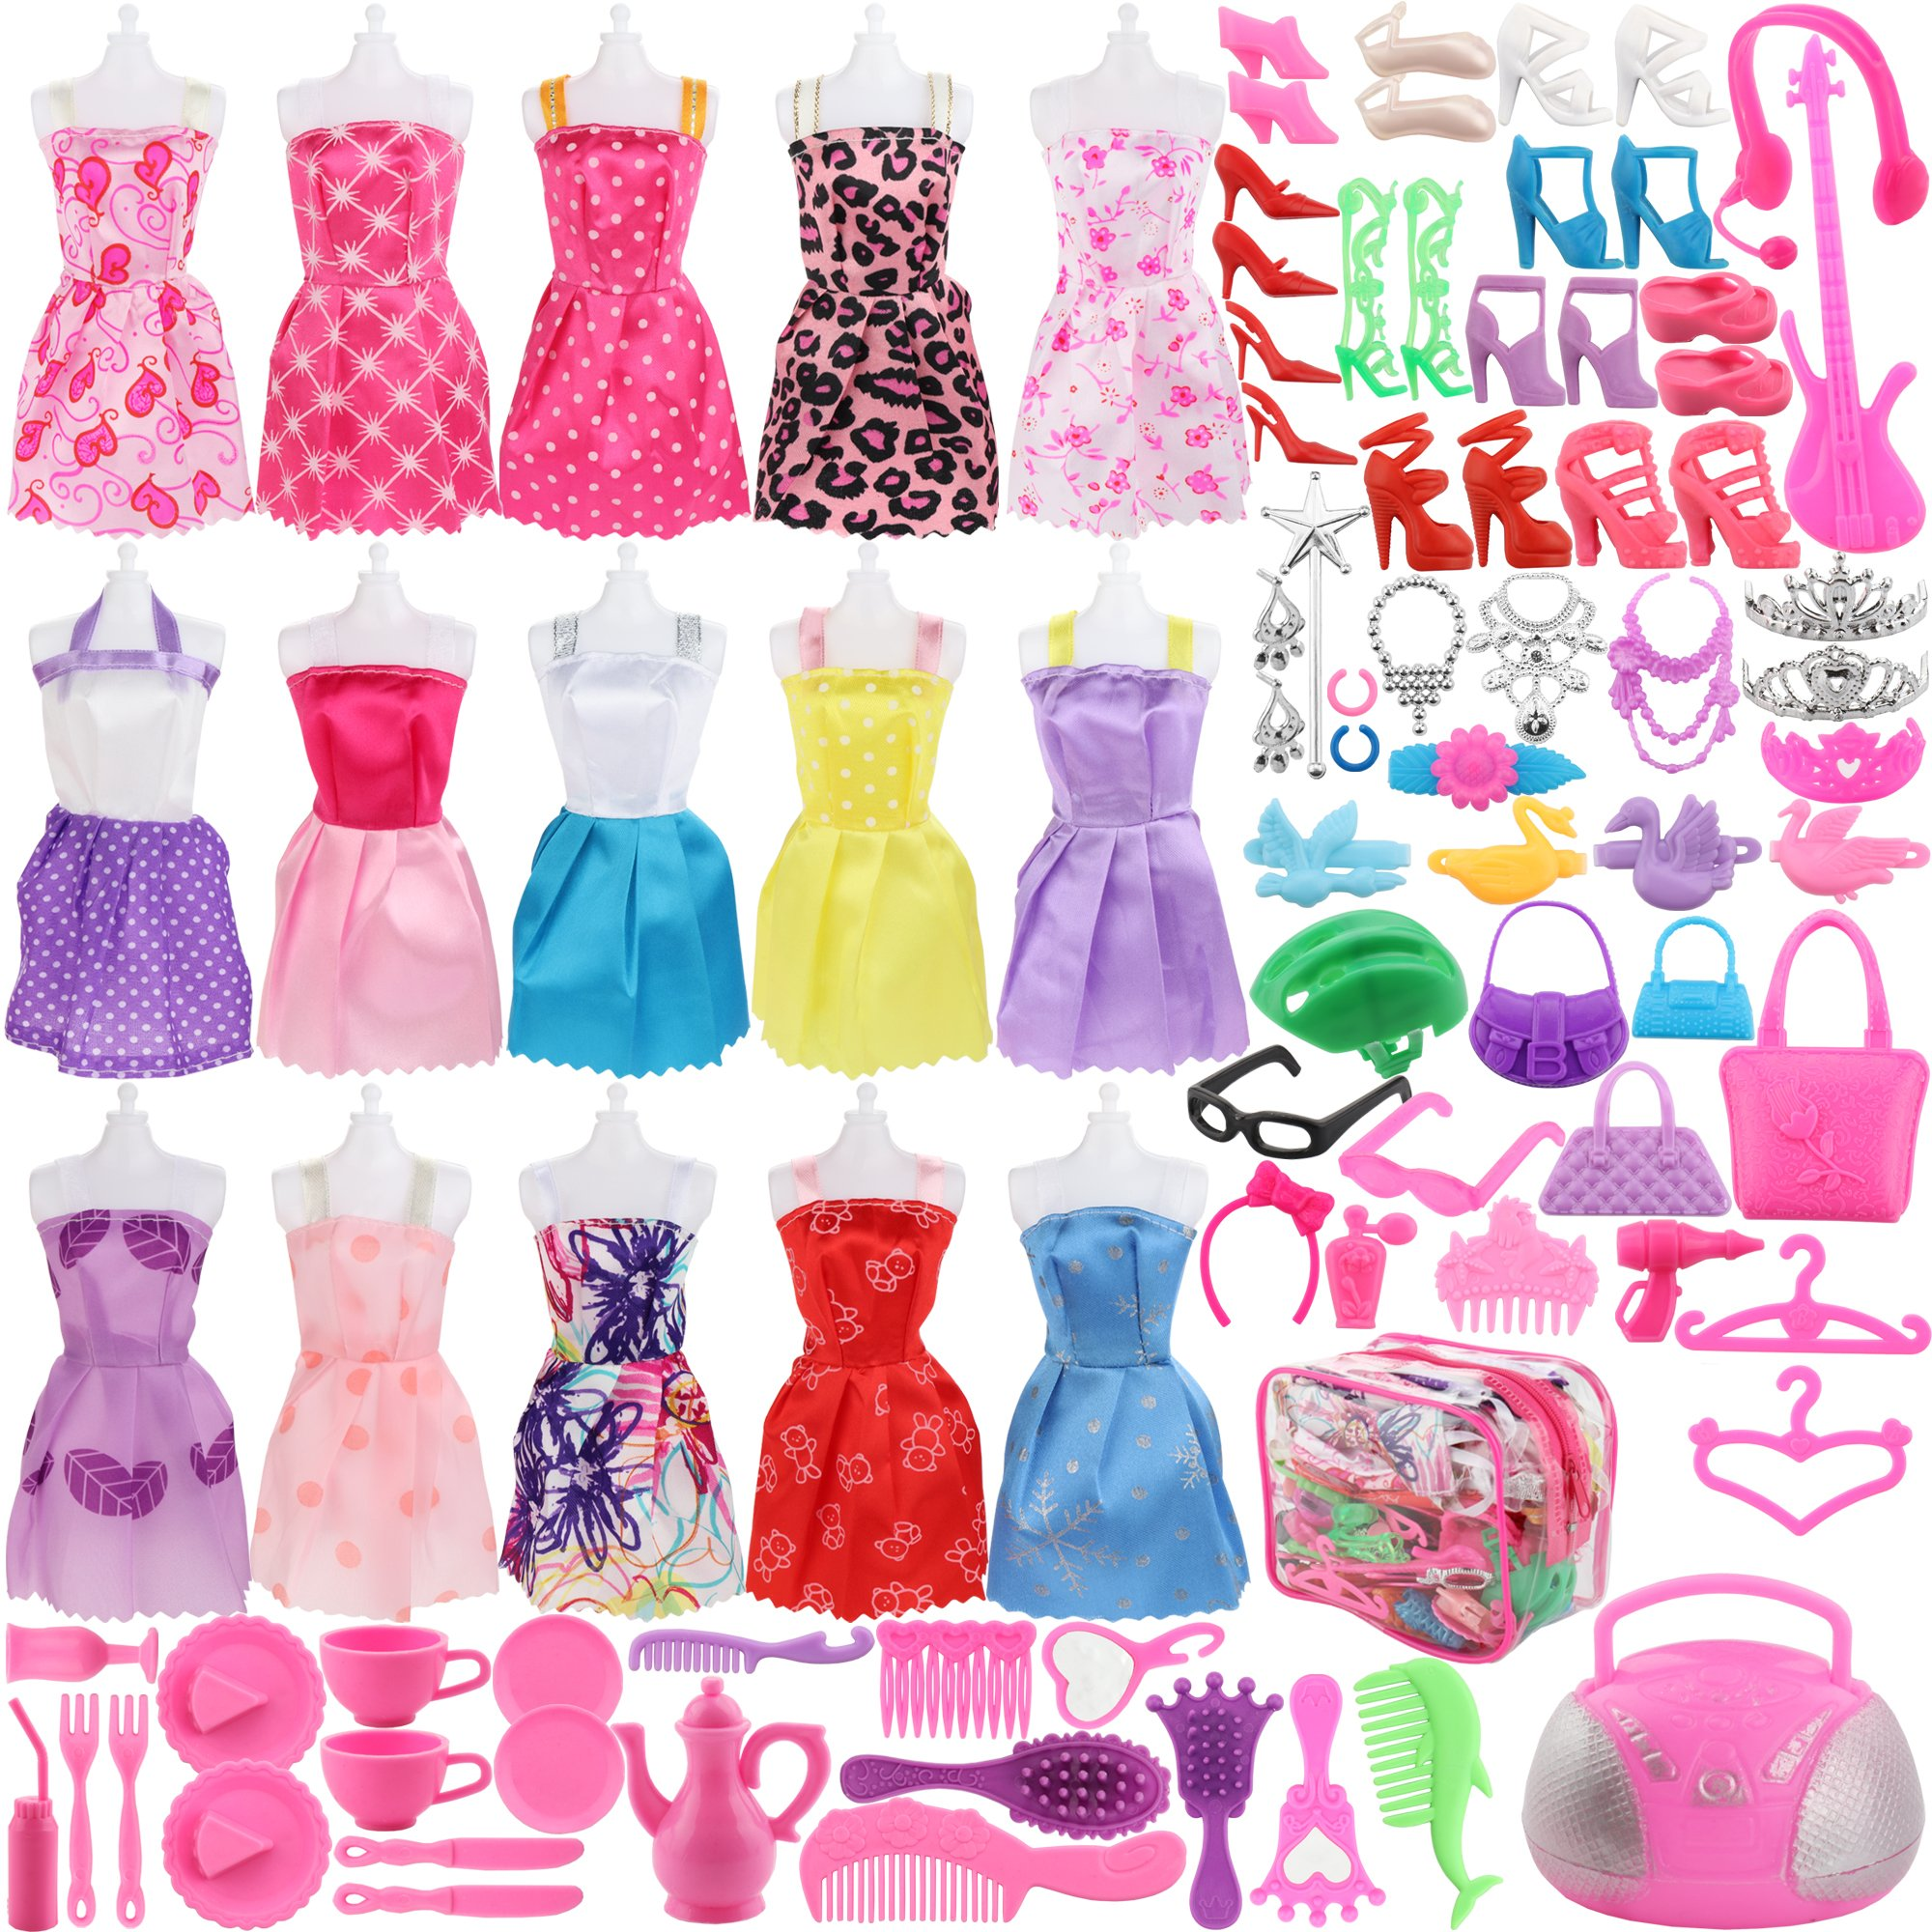 SOTOGO 106 Pieces Doll Clothes Set for Barbie Dolls Include 15 Pieces Clothes Party Grown Outfits and 90 Pieces Different Doll Accessories for Little Girl by SOTOGO